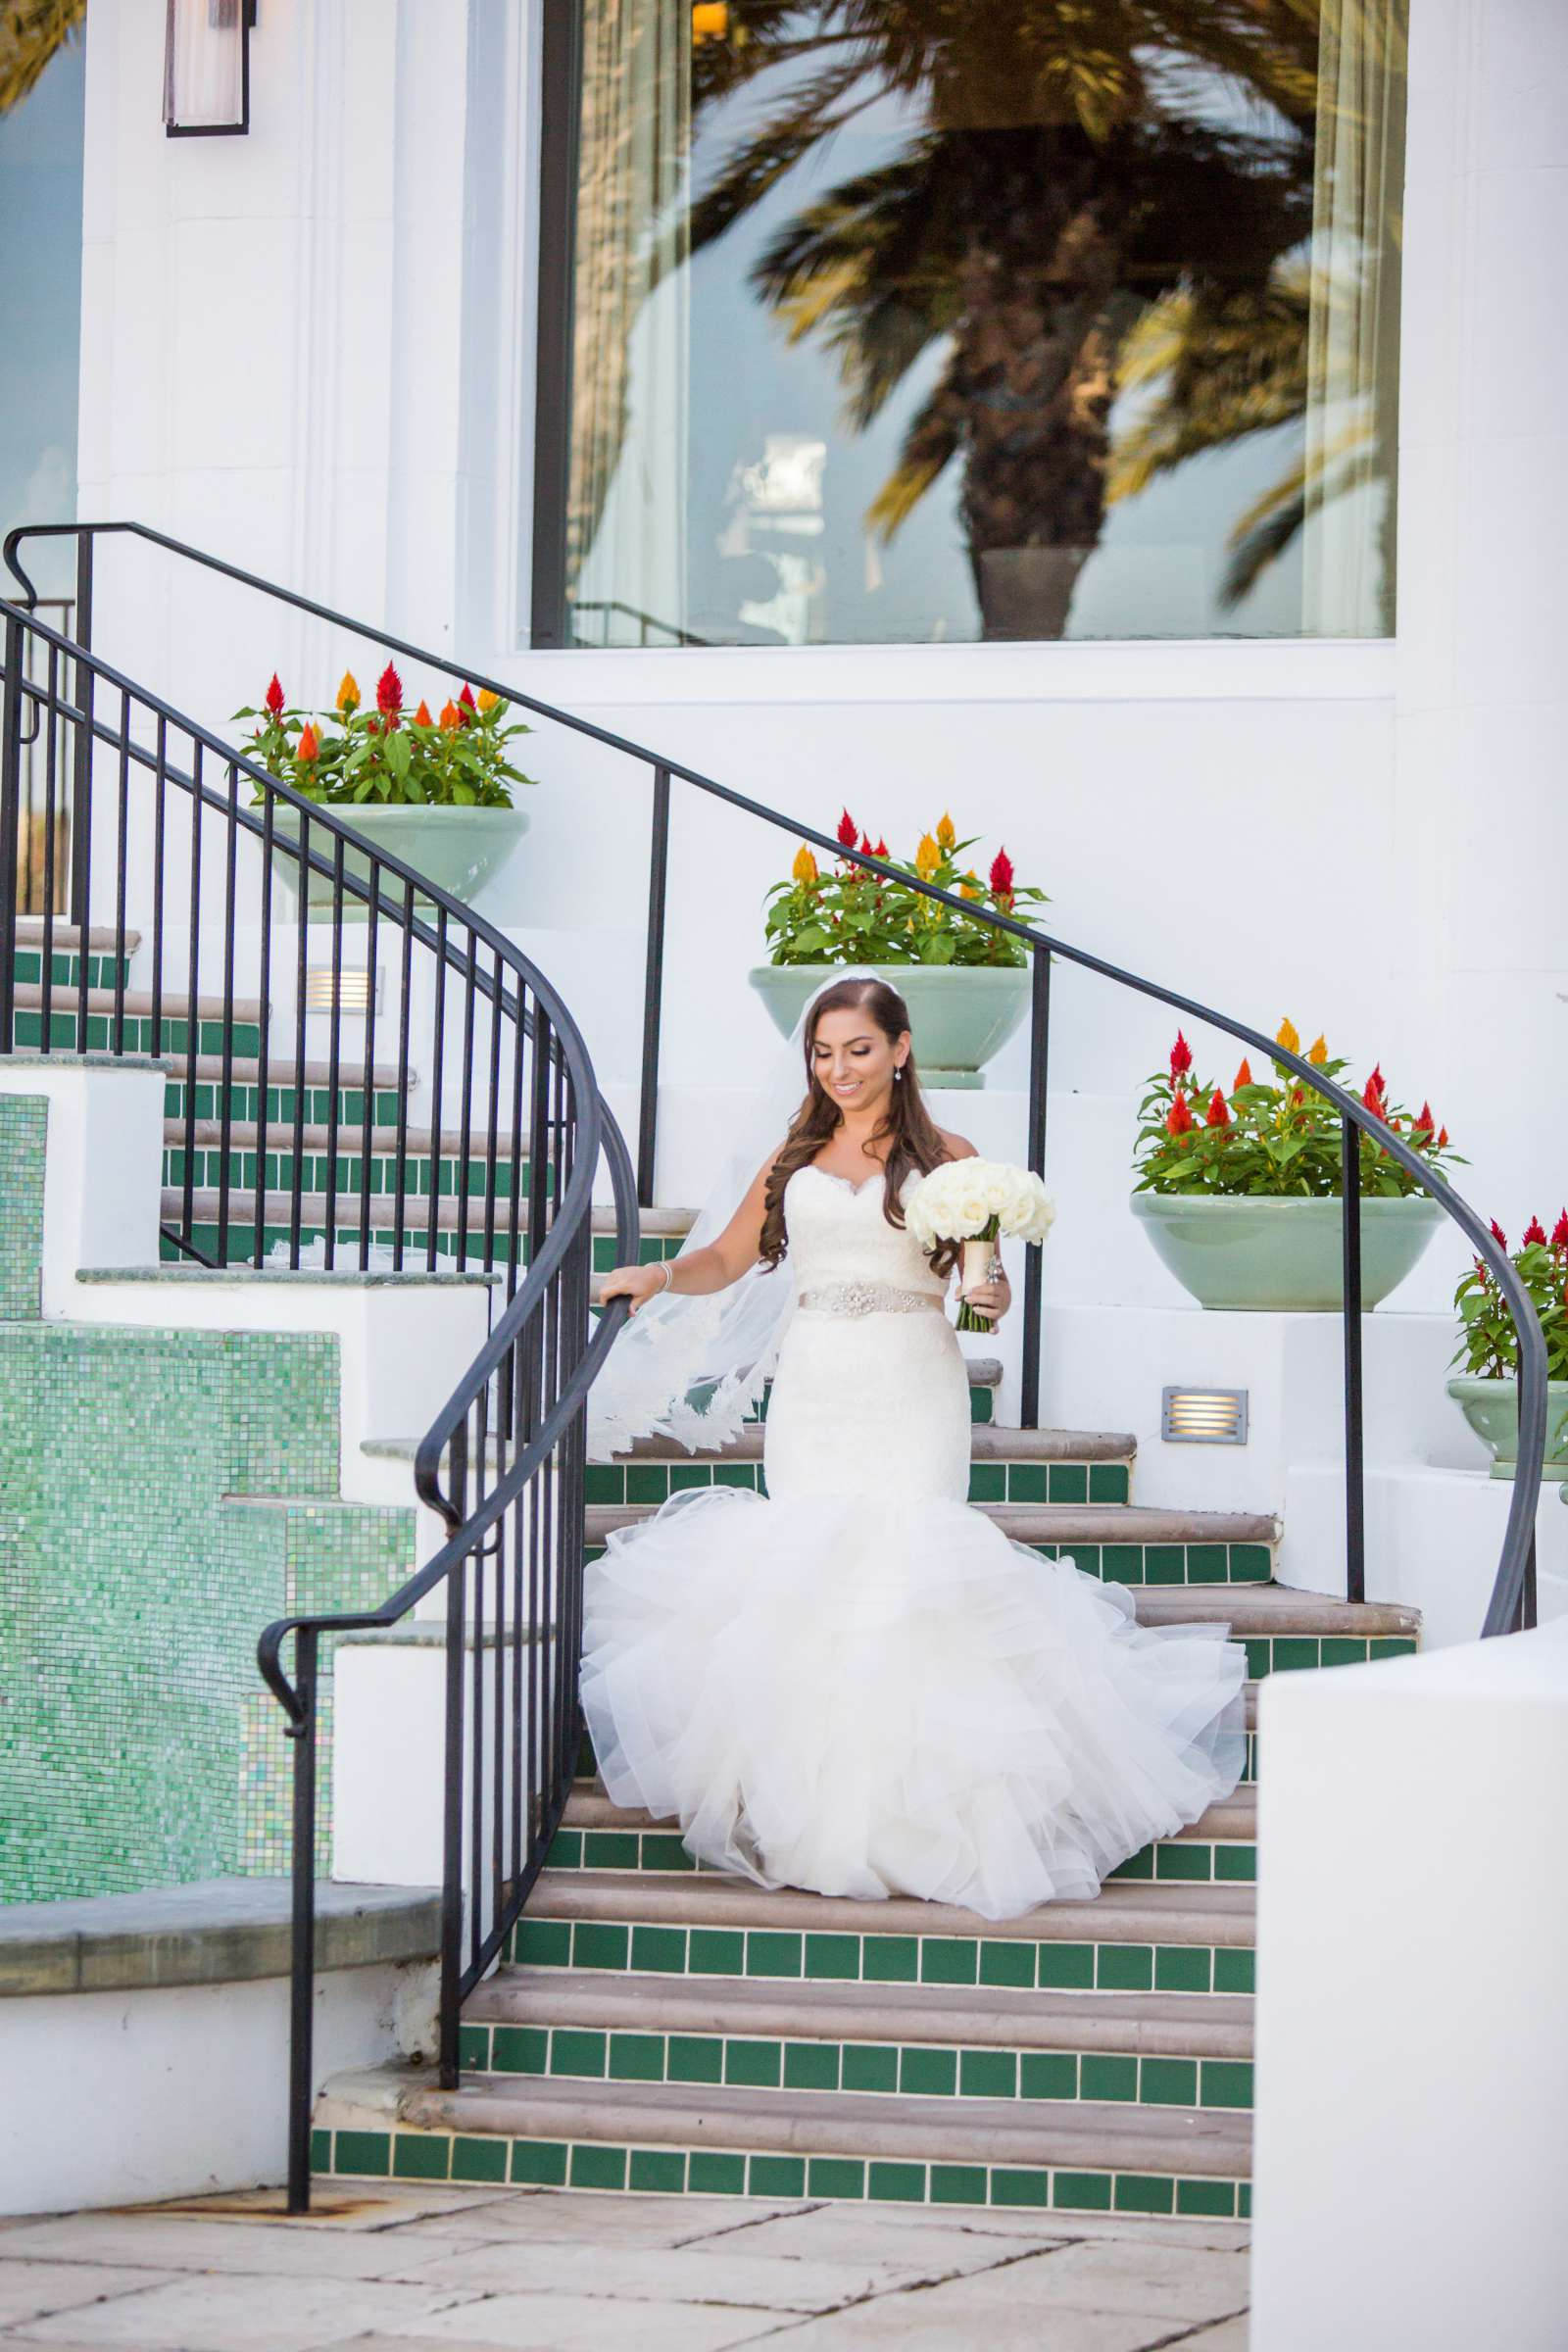 Omni La Costa Resort & Spa Wedding coordinated by Bliss Events, Brittany and Matthew Wedding Photo #247116 by True Photography